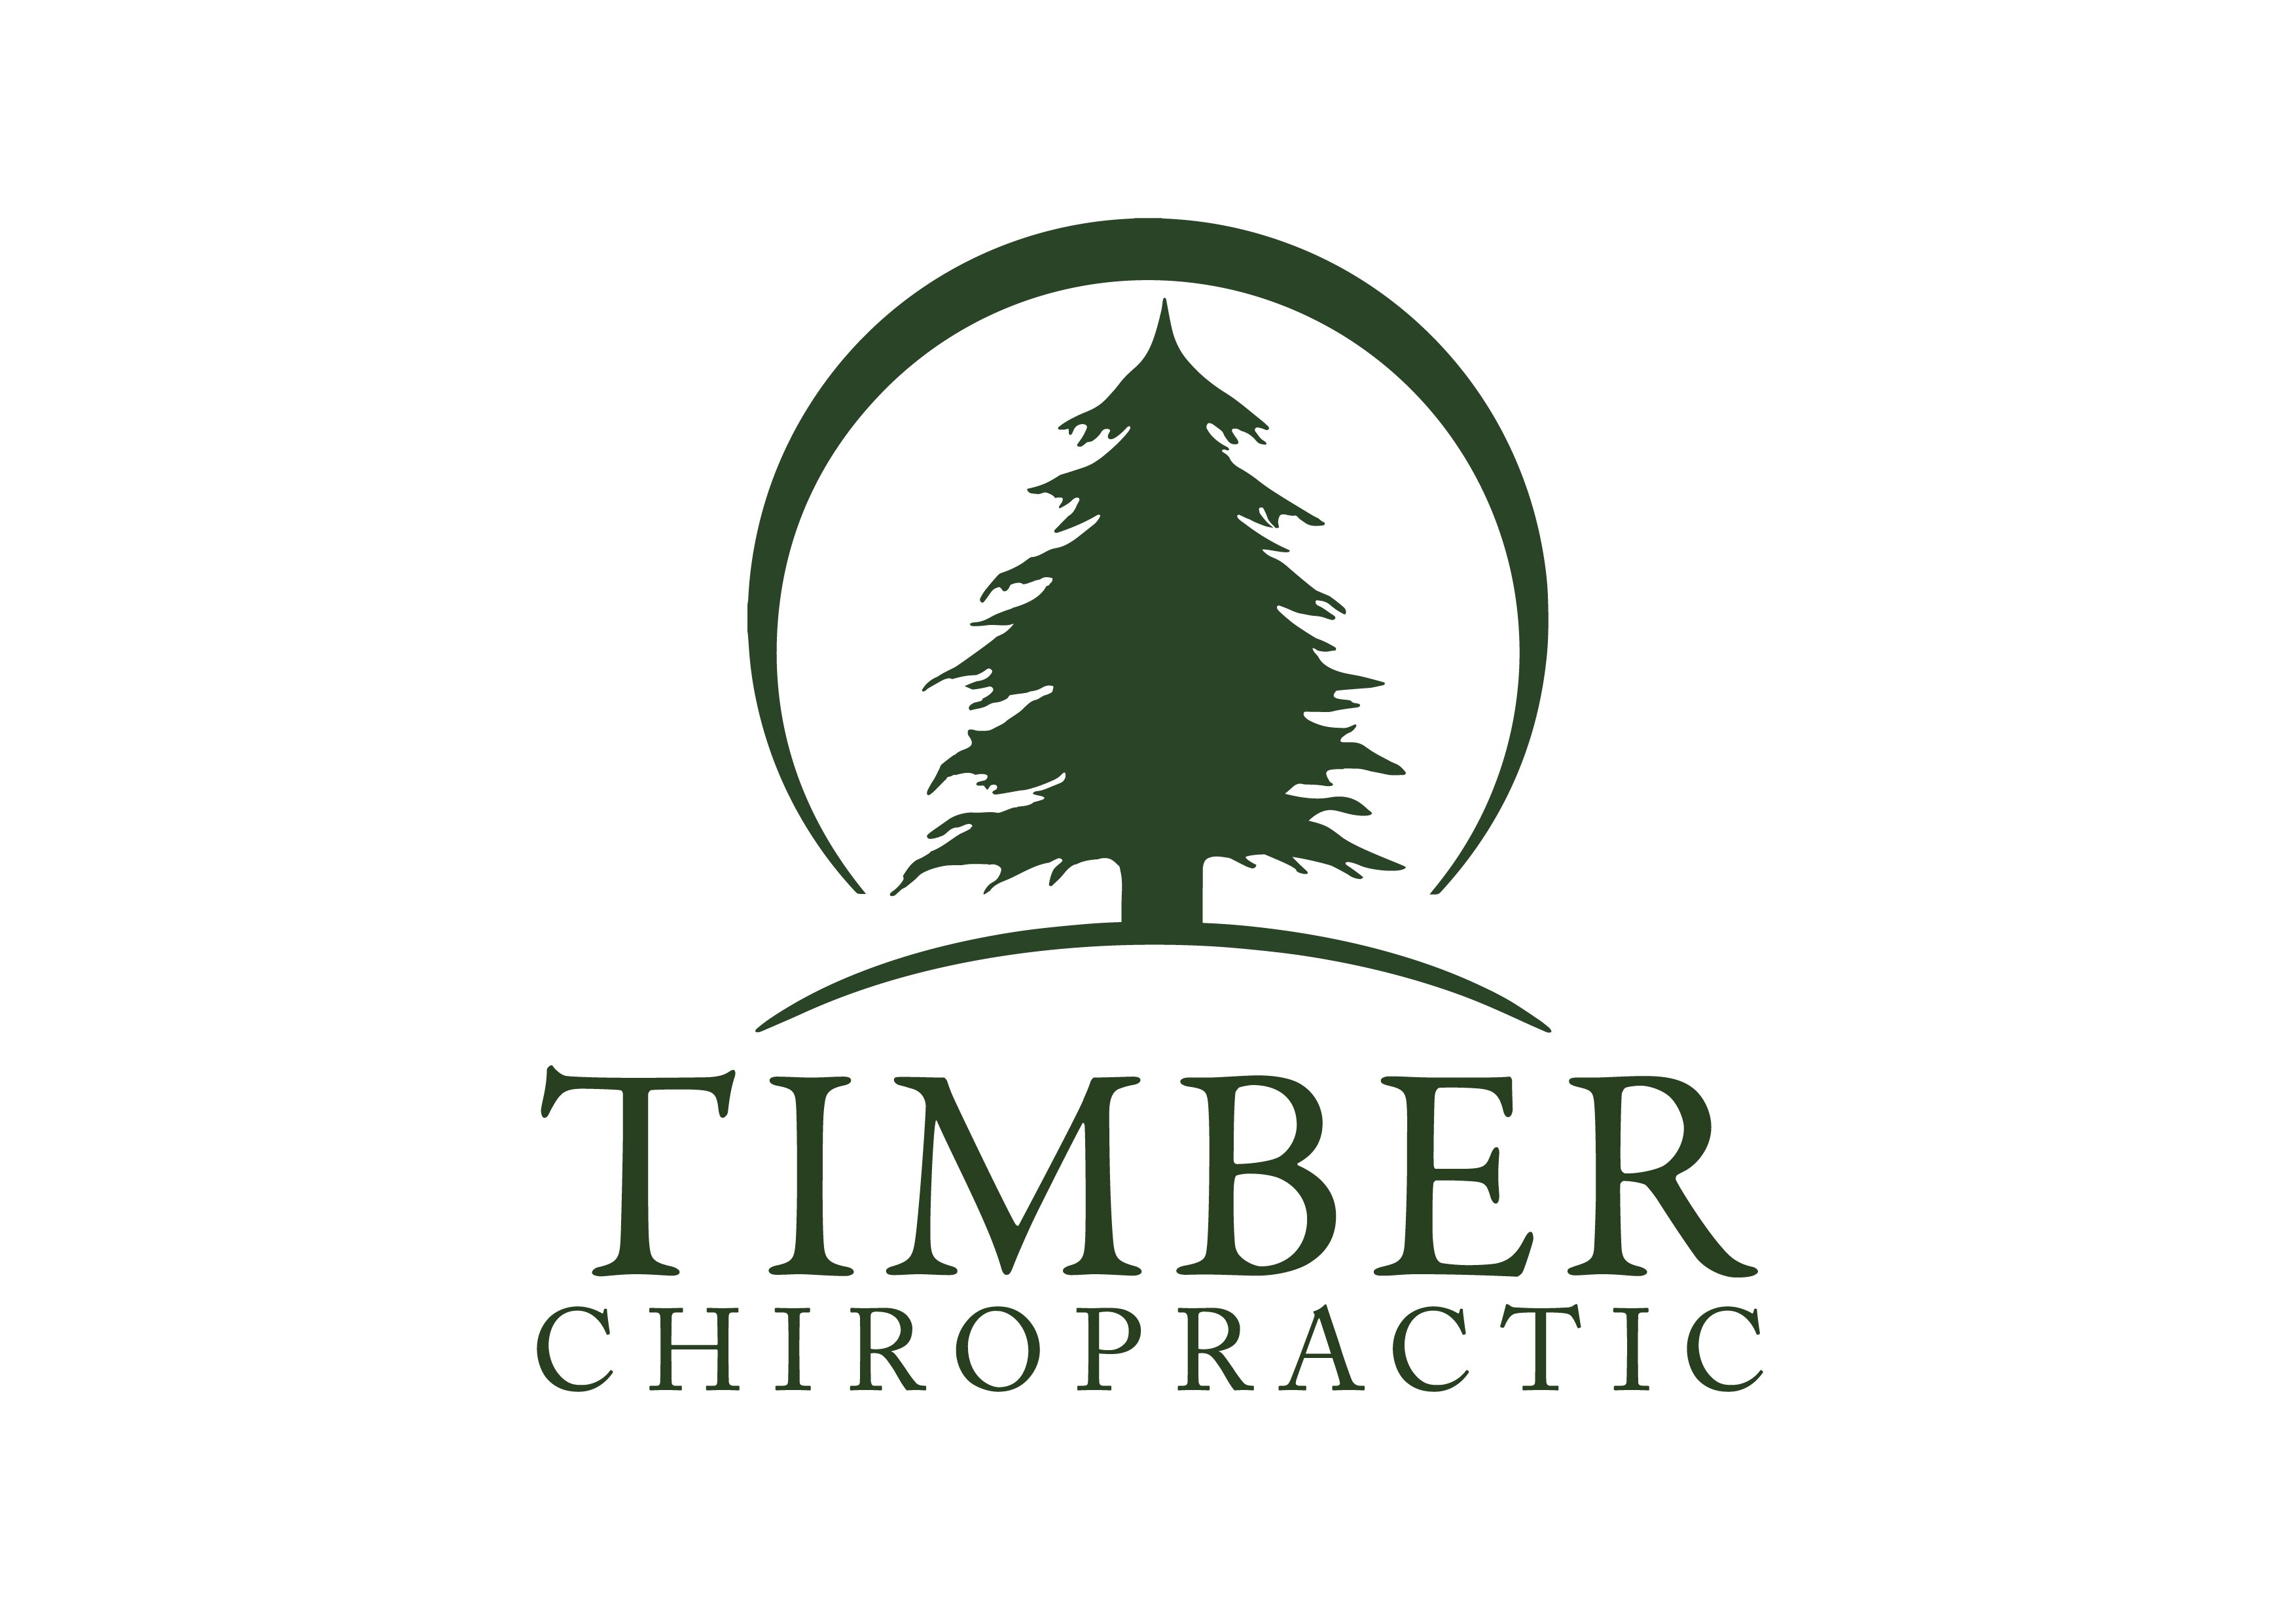 Logo needed for chiropractic clinic